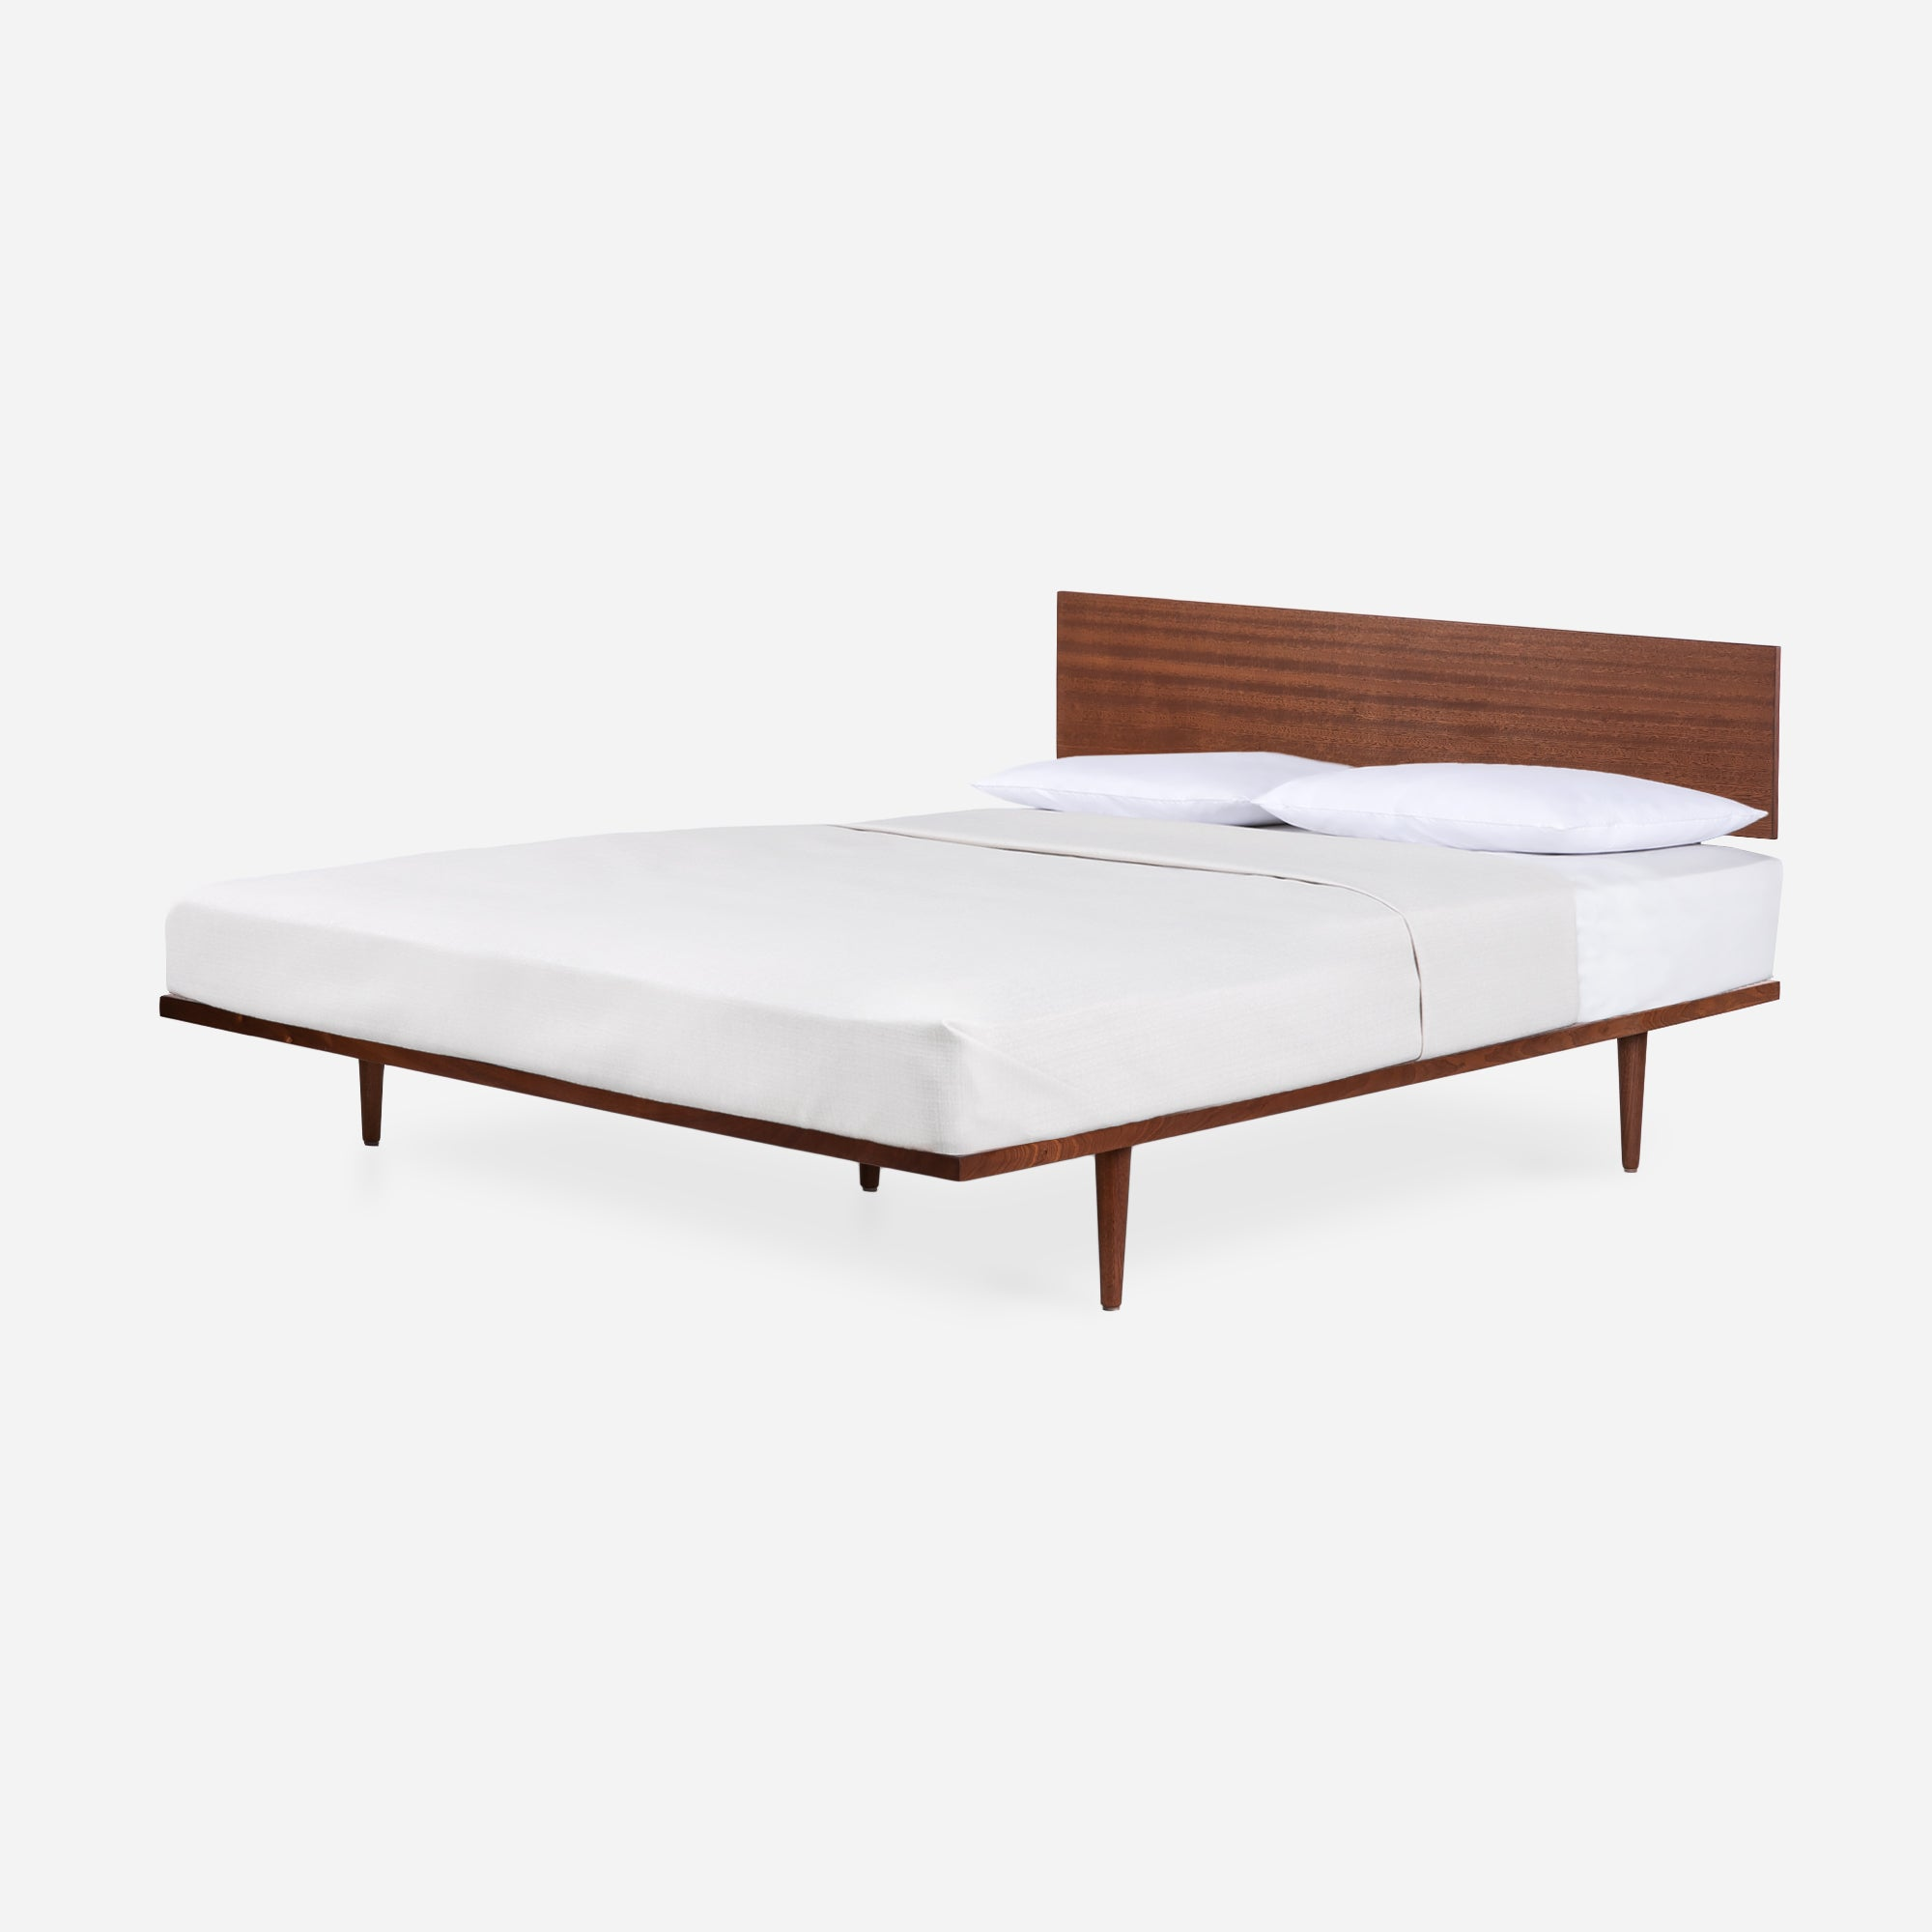 Fonkelnieuw Case Study Furniture® Solid Wood Bed & Lief Mattress Set KJ-35